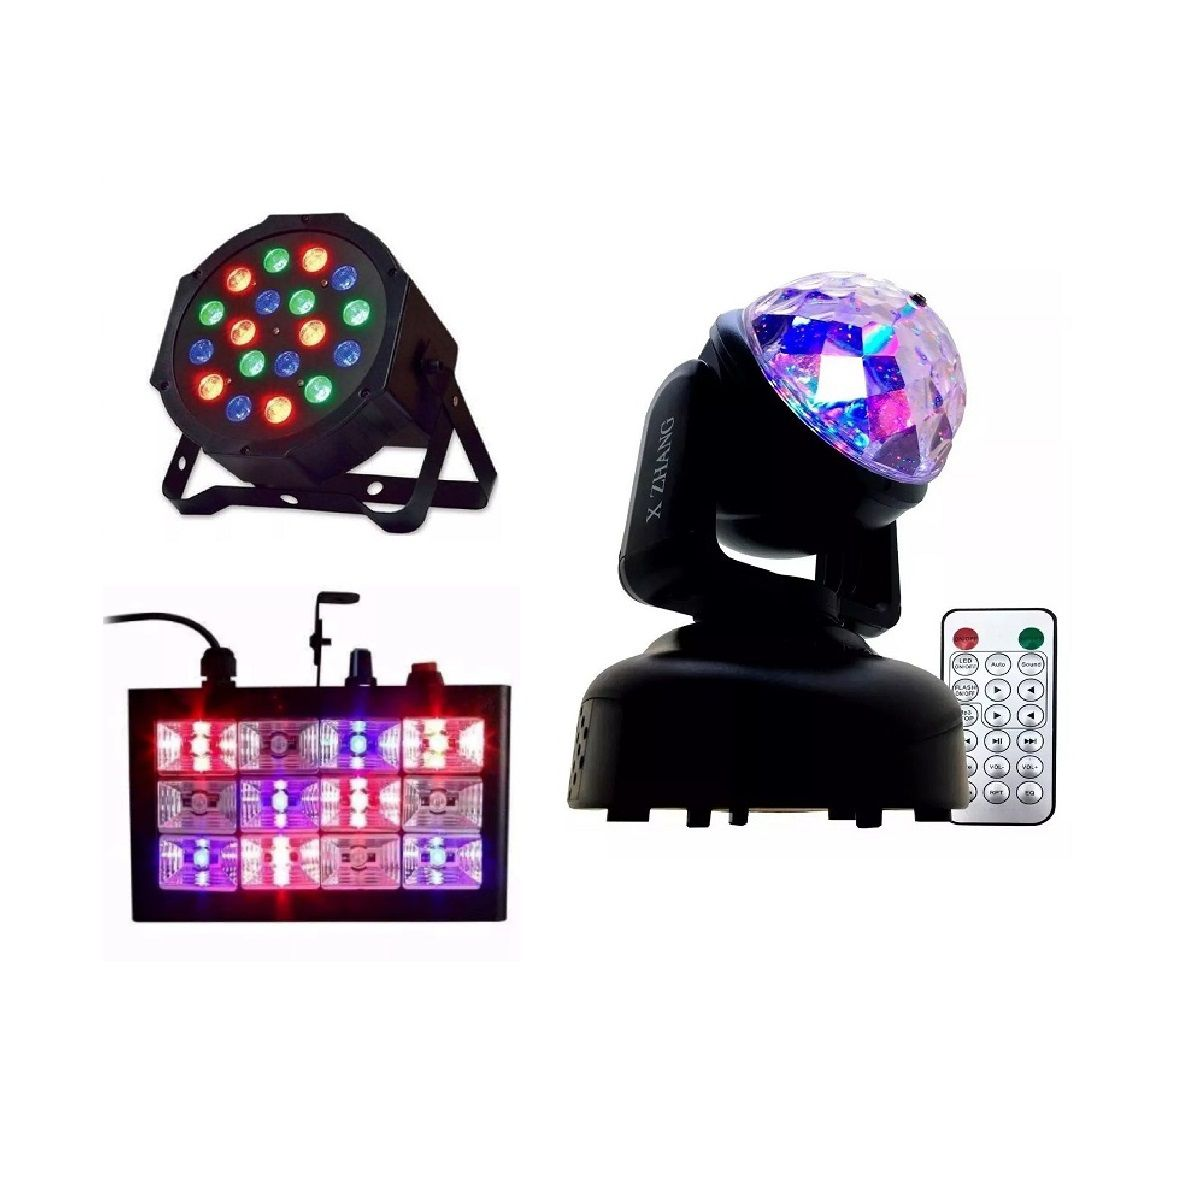 Kit Canhão Luz 18 LEDs + Strobo 12 LEDs RGB + Mini Moving Head Bola Maluca - 18LEDSLIM+12LEDRGBR+HL-080